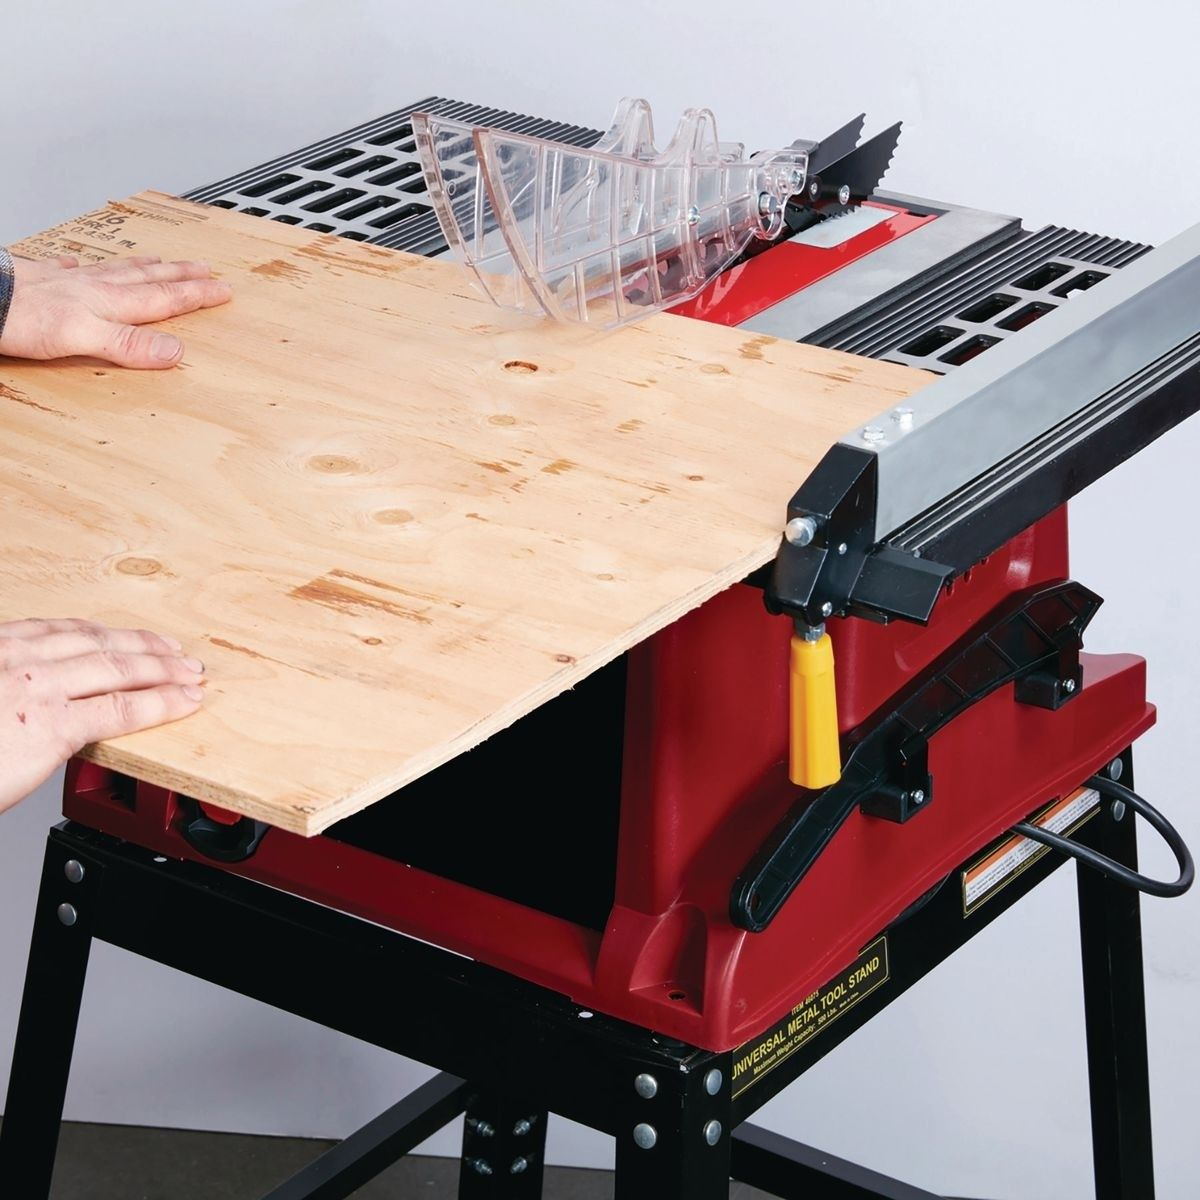 10 In 15 Amp Benchtop Table Saw In 2020 Benchtop Table Saw